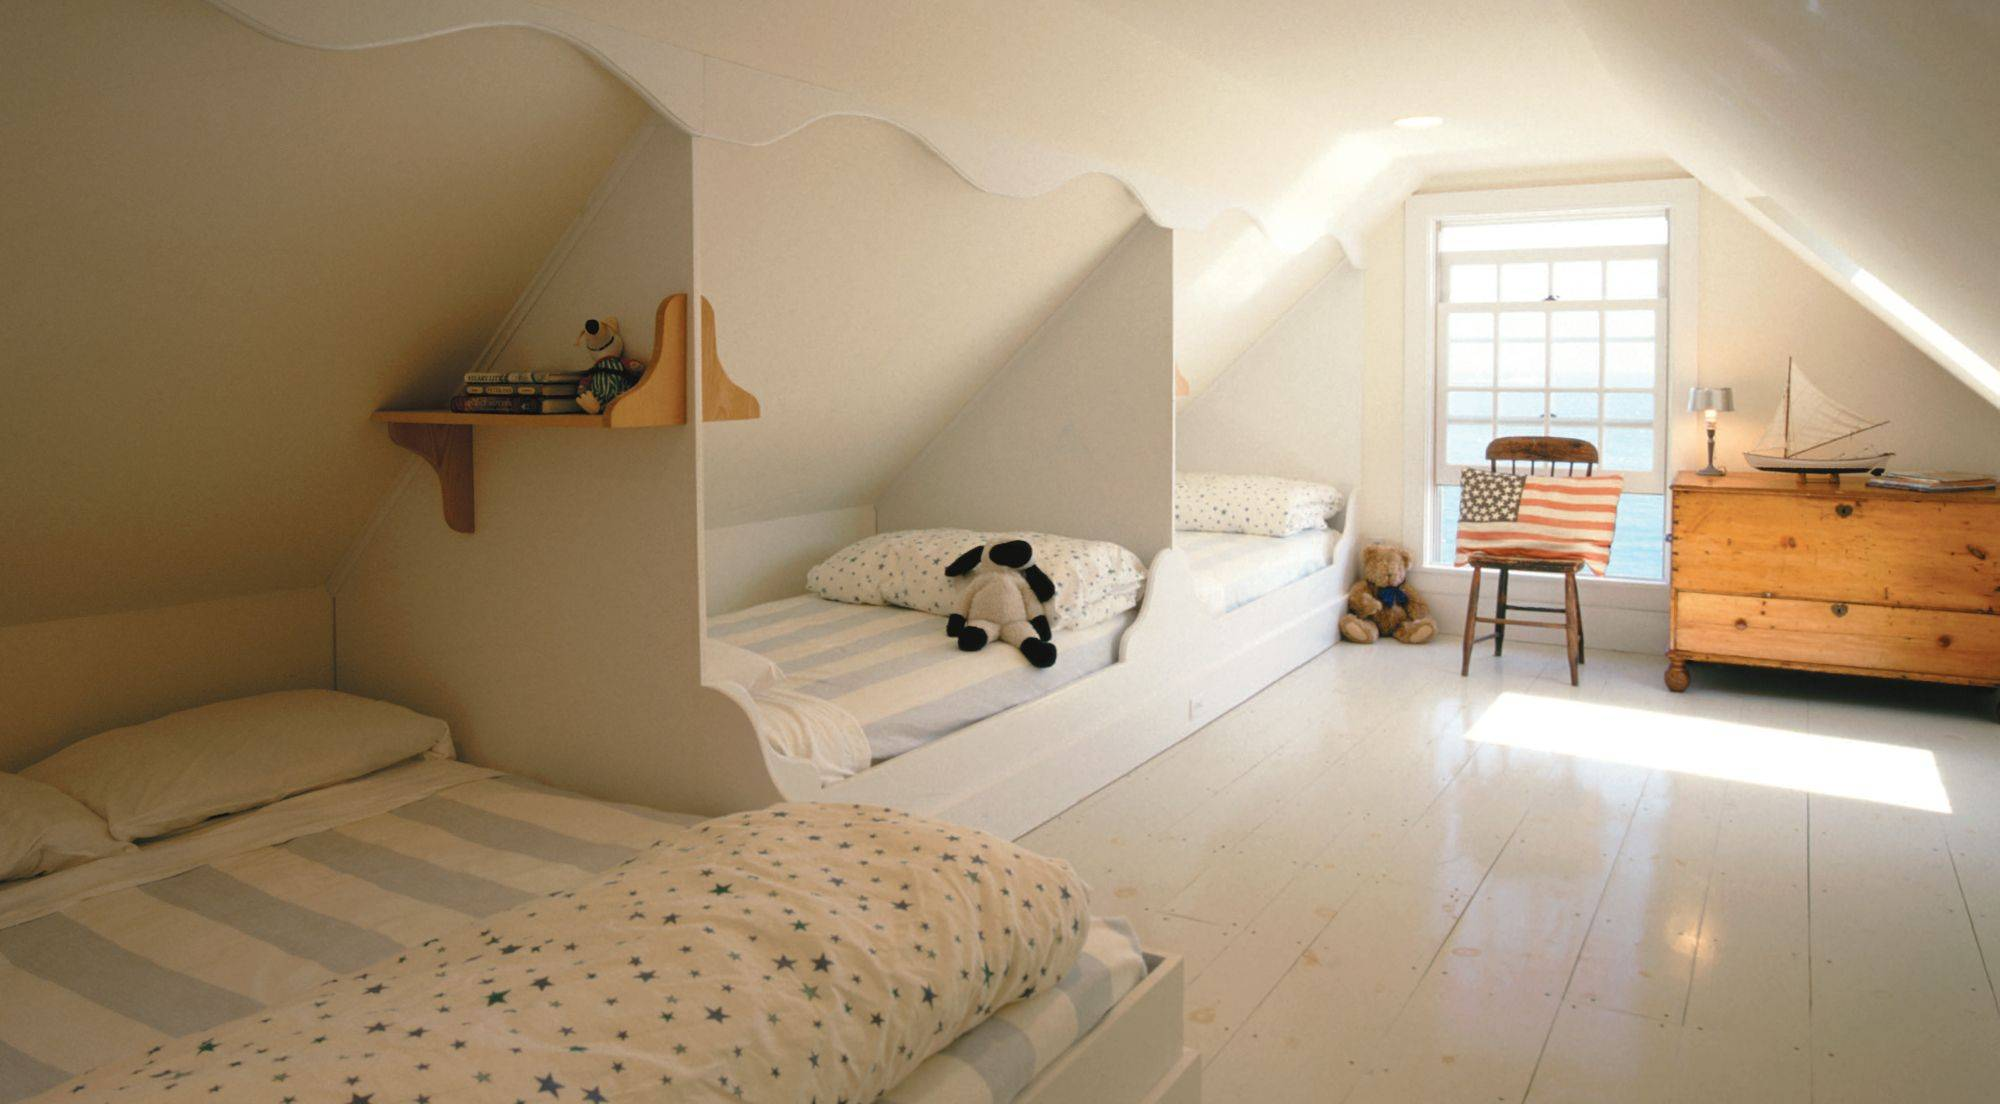 Attic Rooms Ideas Unique Built In attic Beds